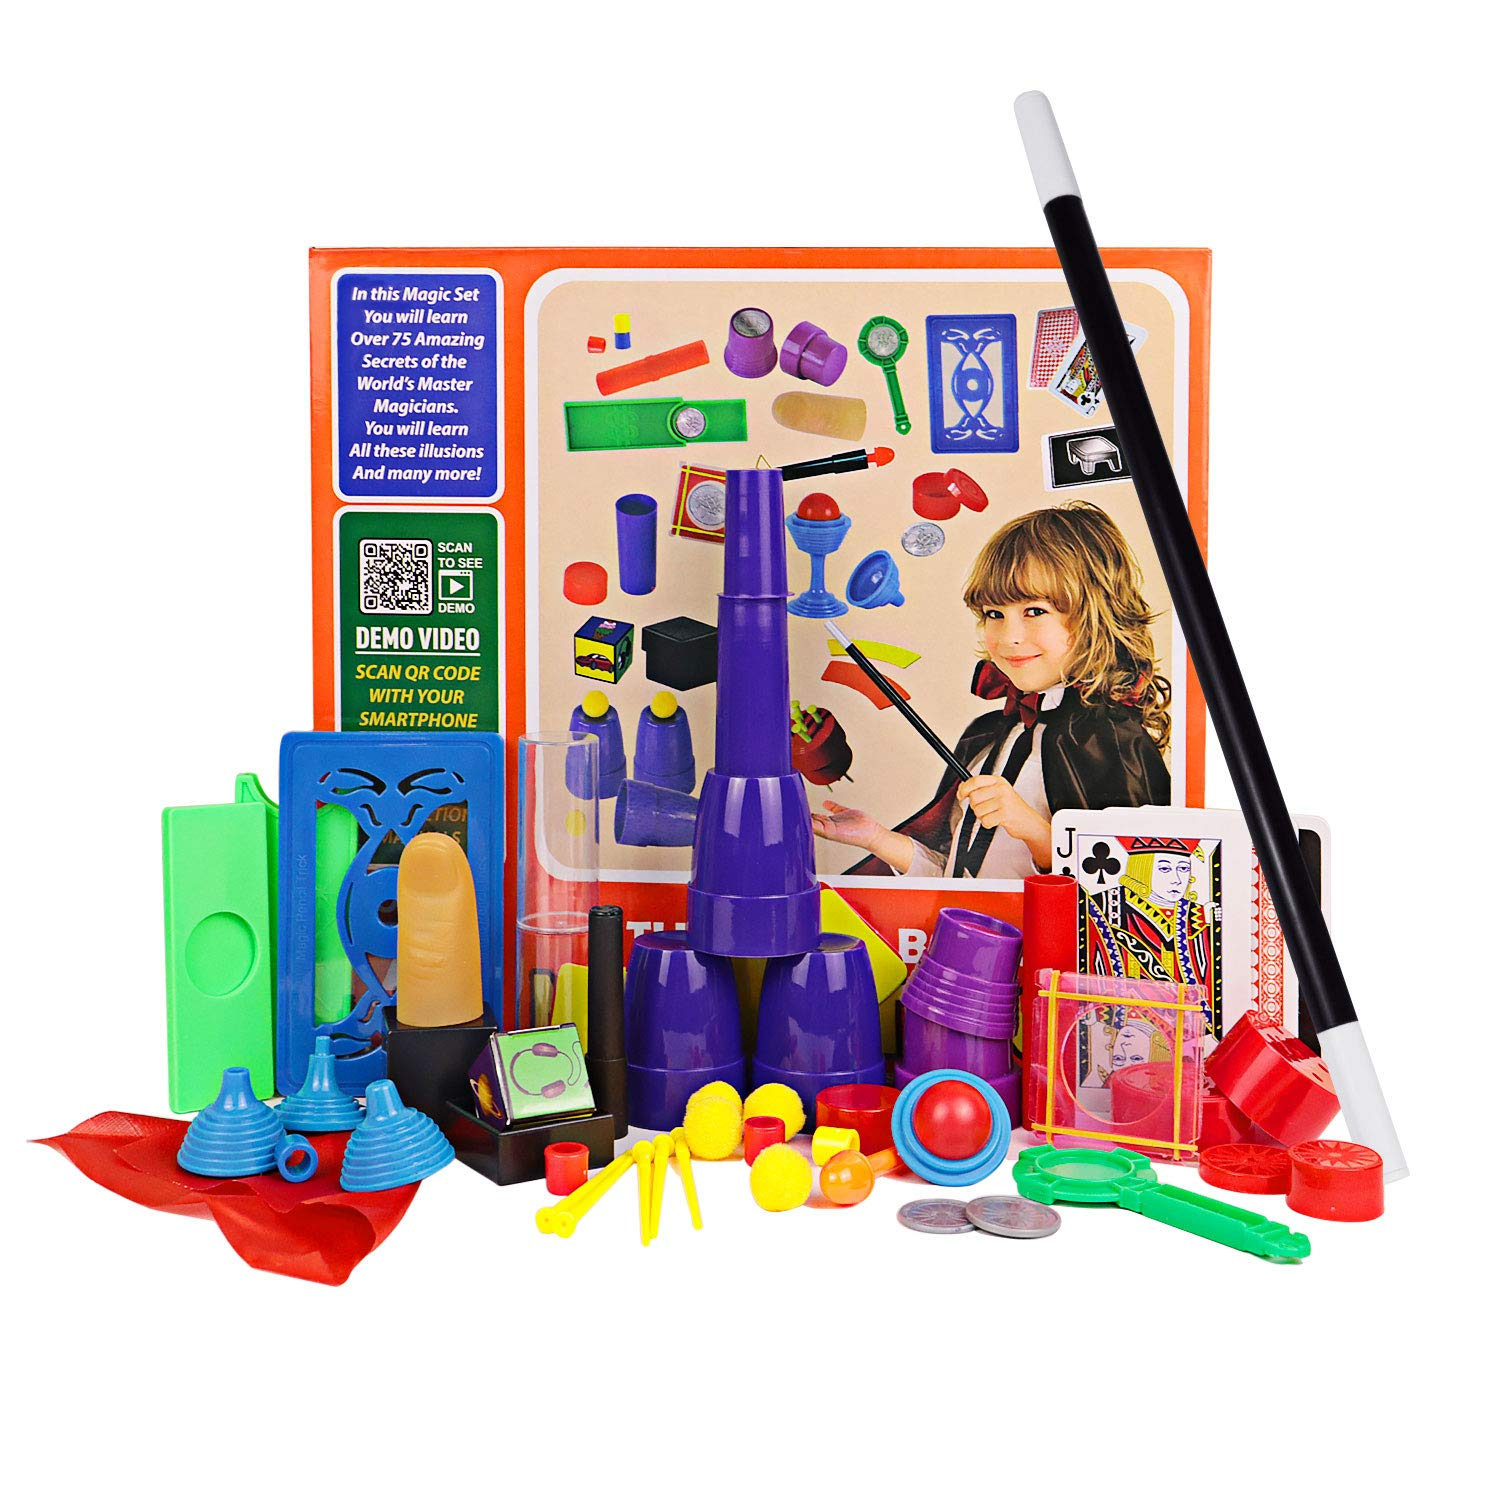 HAPTIME Kids Magic Tricks Kit for Beginners, Little Magician Illusions Deck Performance, Secrets of Levitation by Magic Maker, Children's Game, , Best Age for 4 5 6 7 8 9 10 Year Old Boy or Girl